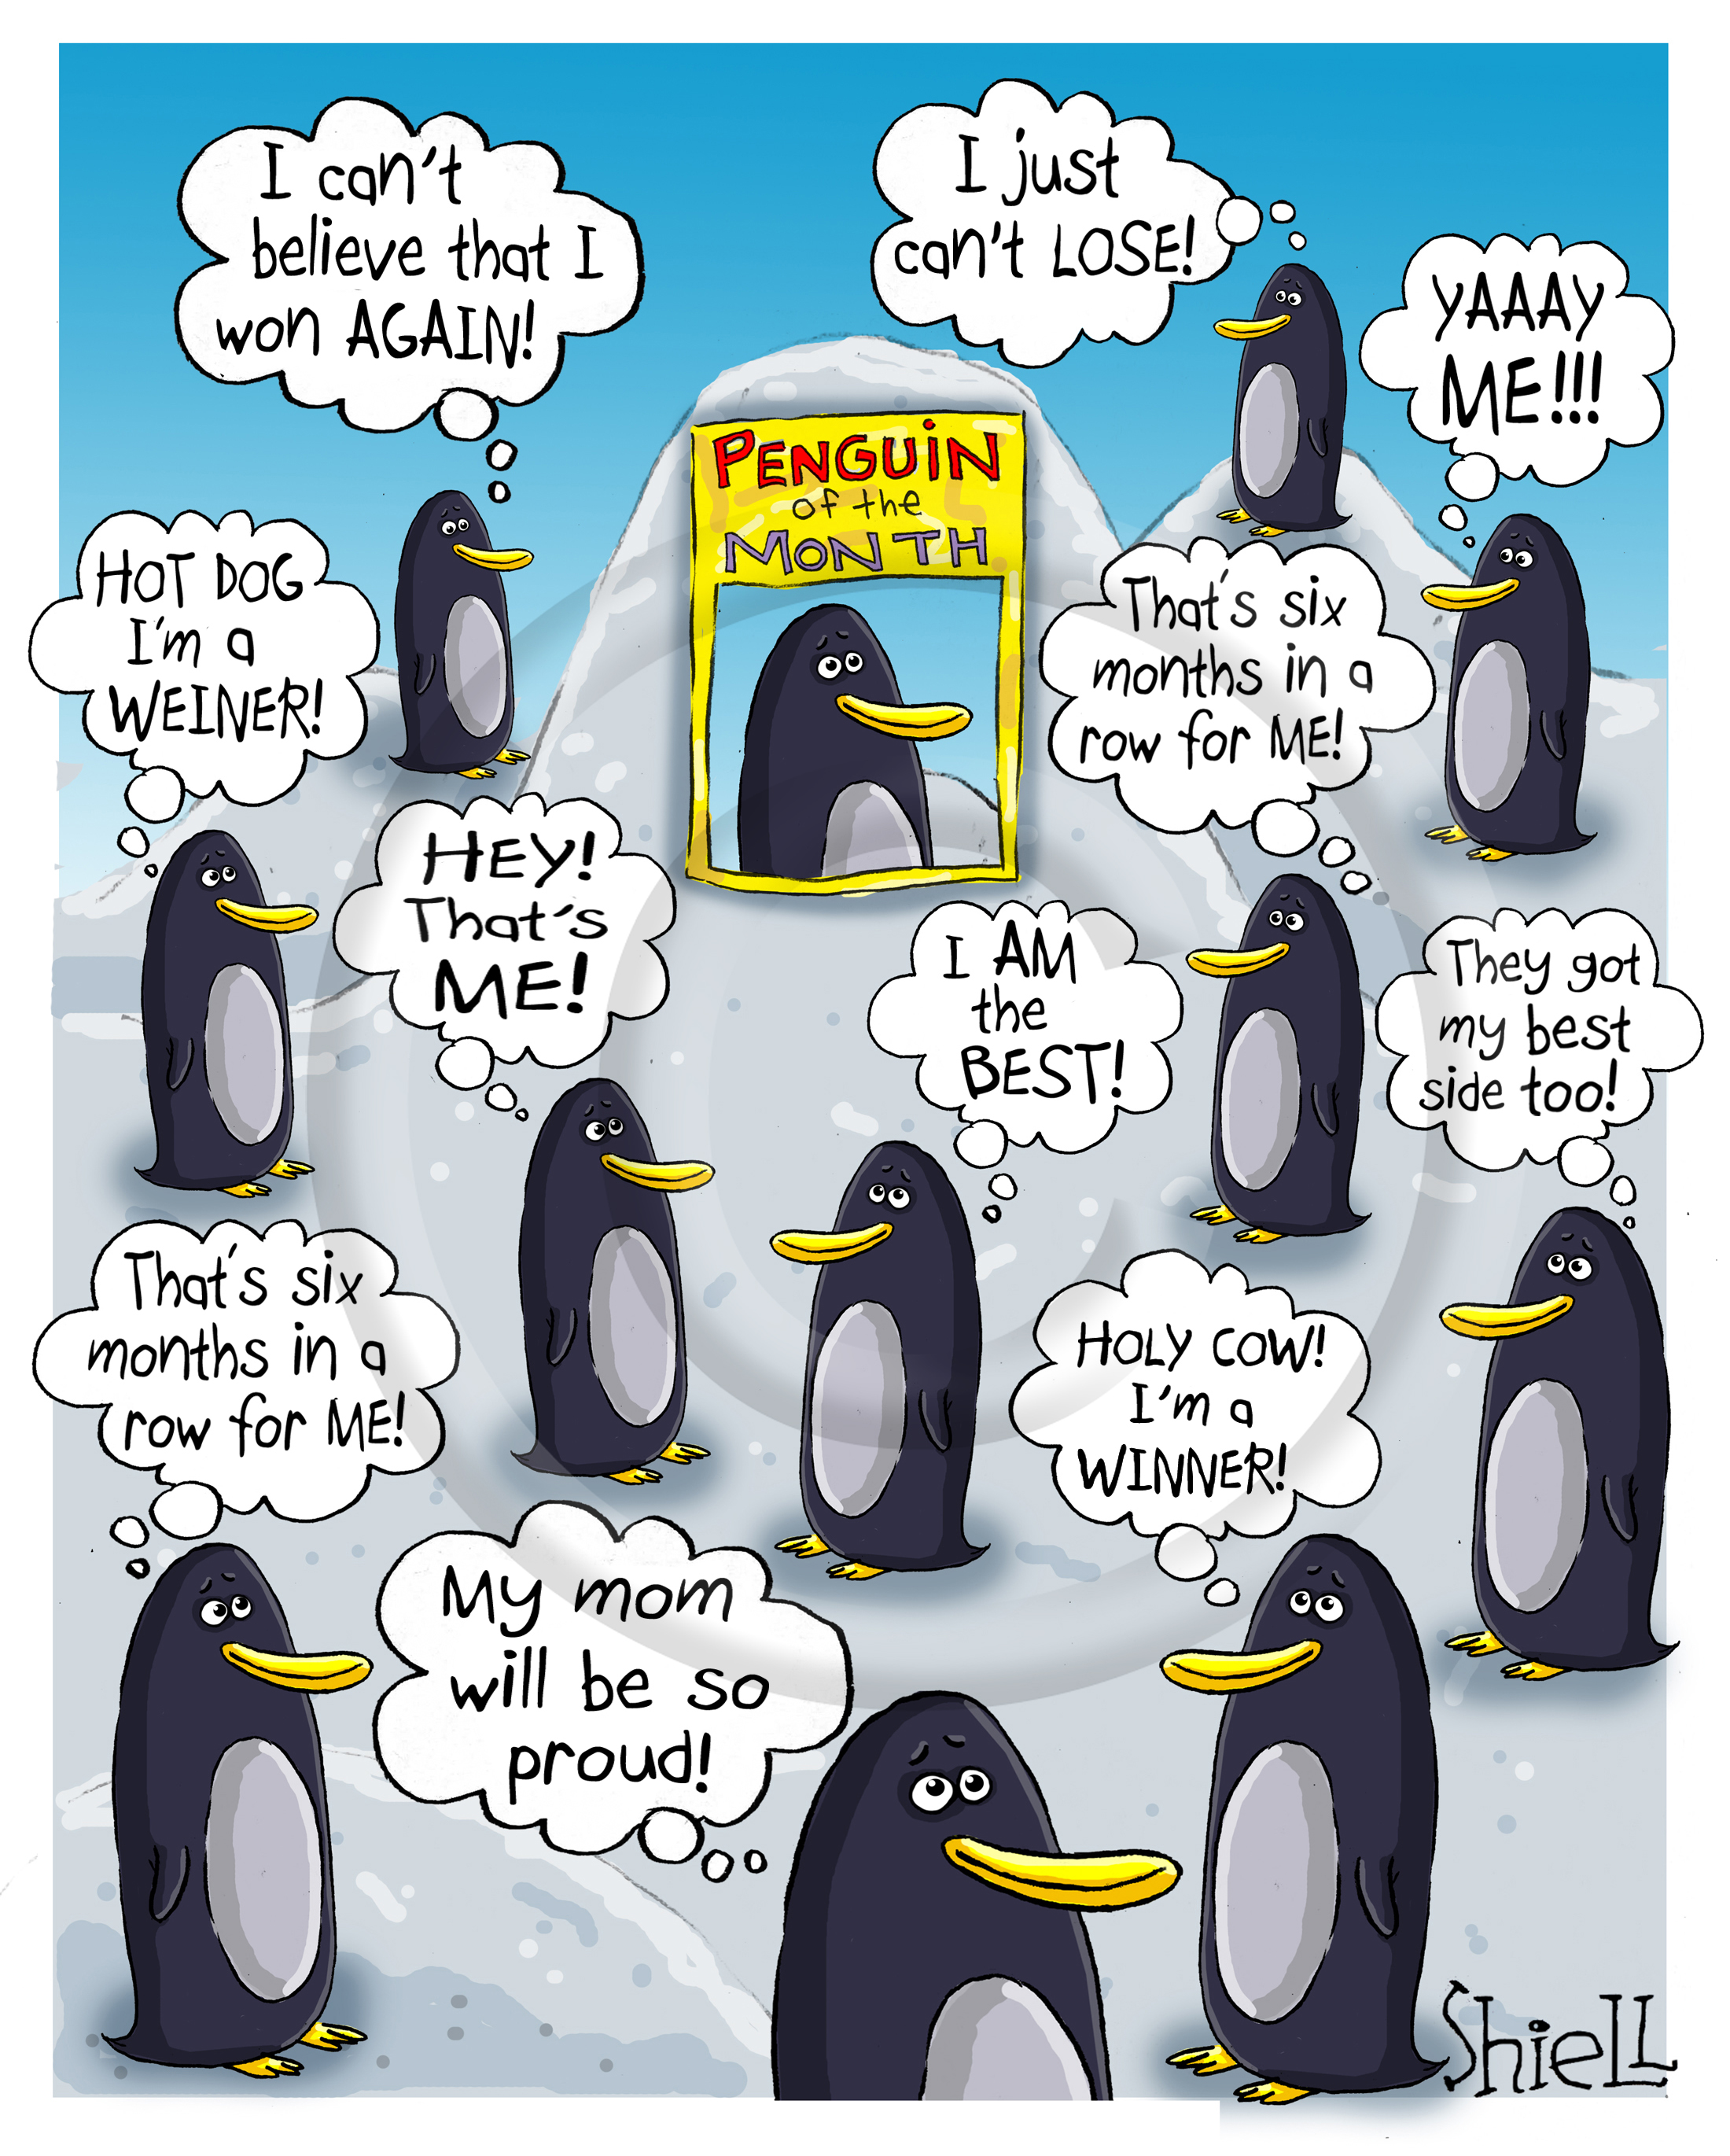 Penguin of the Month. All of the look alike penguins mistakenly think that they are the Penguin of the Month.